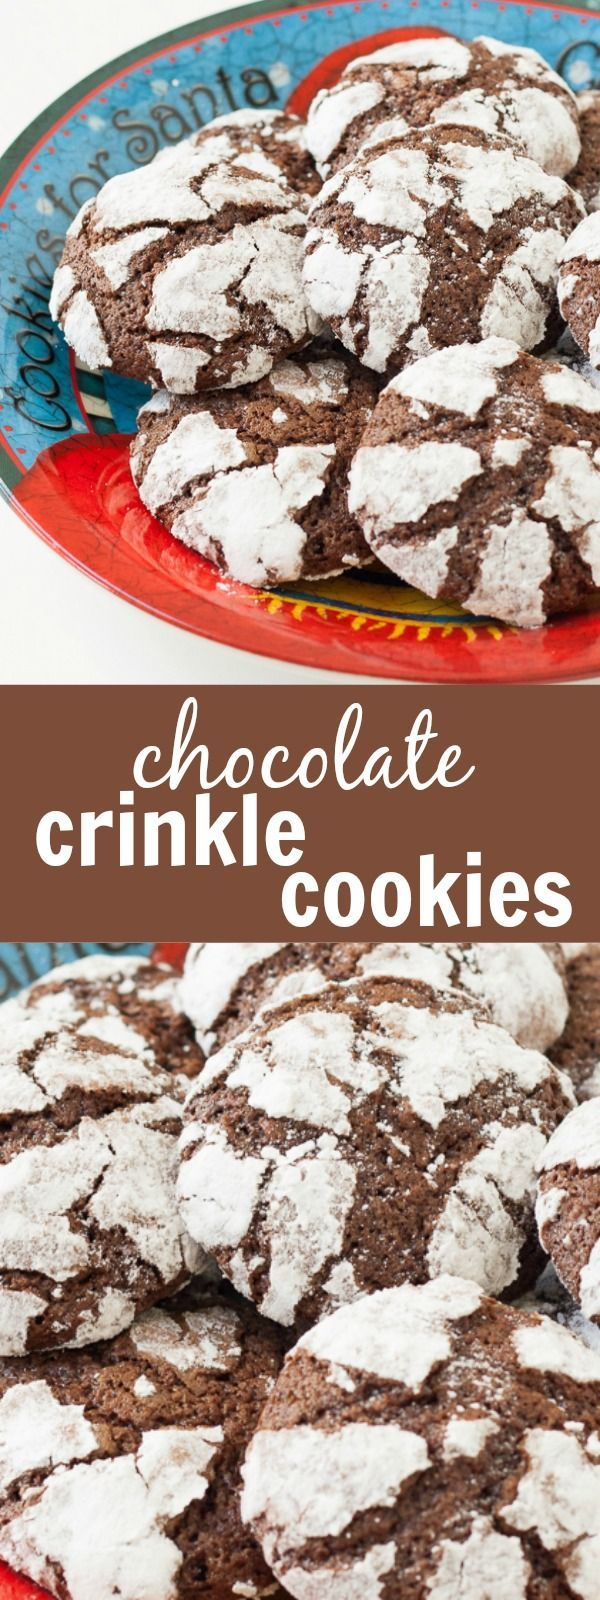 These soft and chewy Chocolate Crinkle Cookies are rolled in powdered sugar before baking for the classic crinkle look. These are one of my family's all-time favorite Christmas cookies!